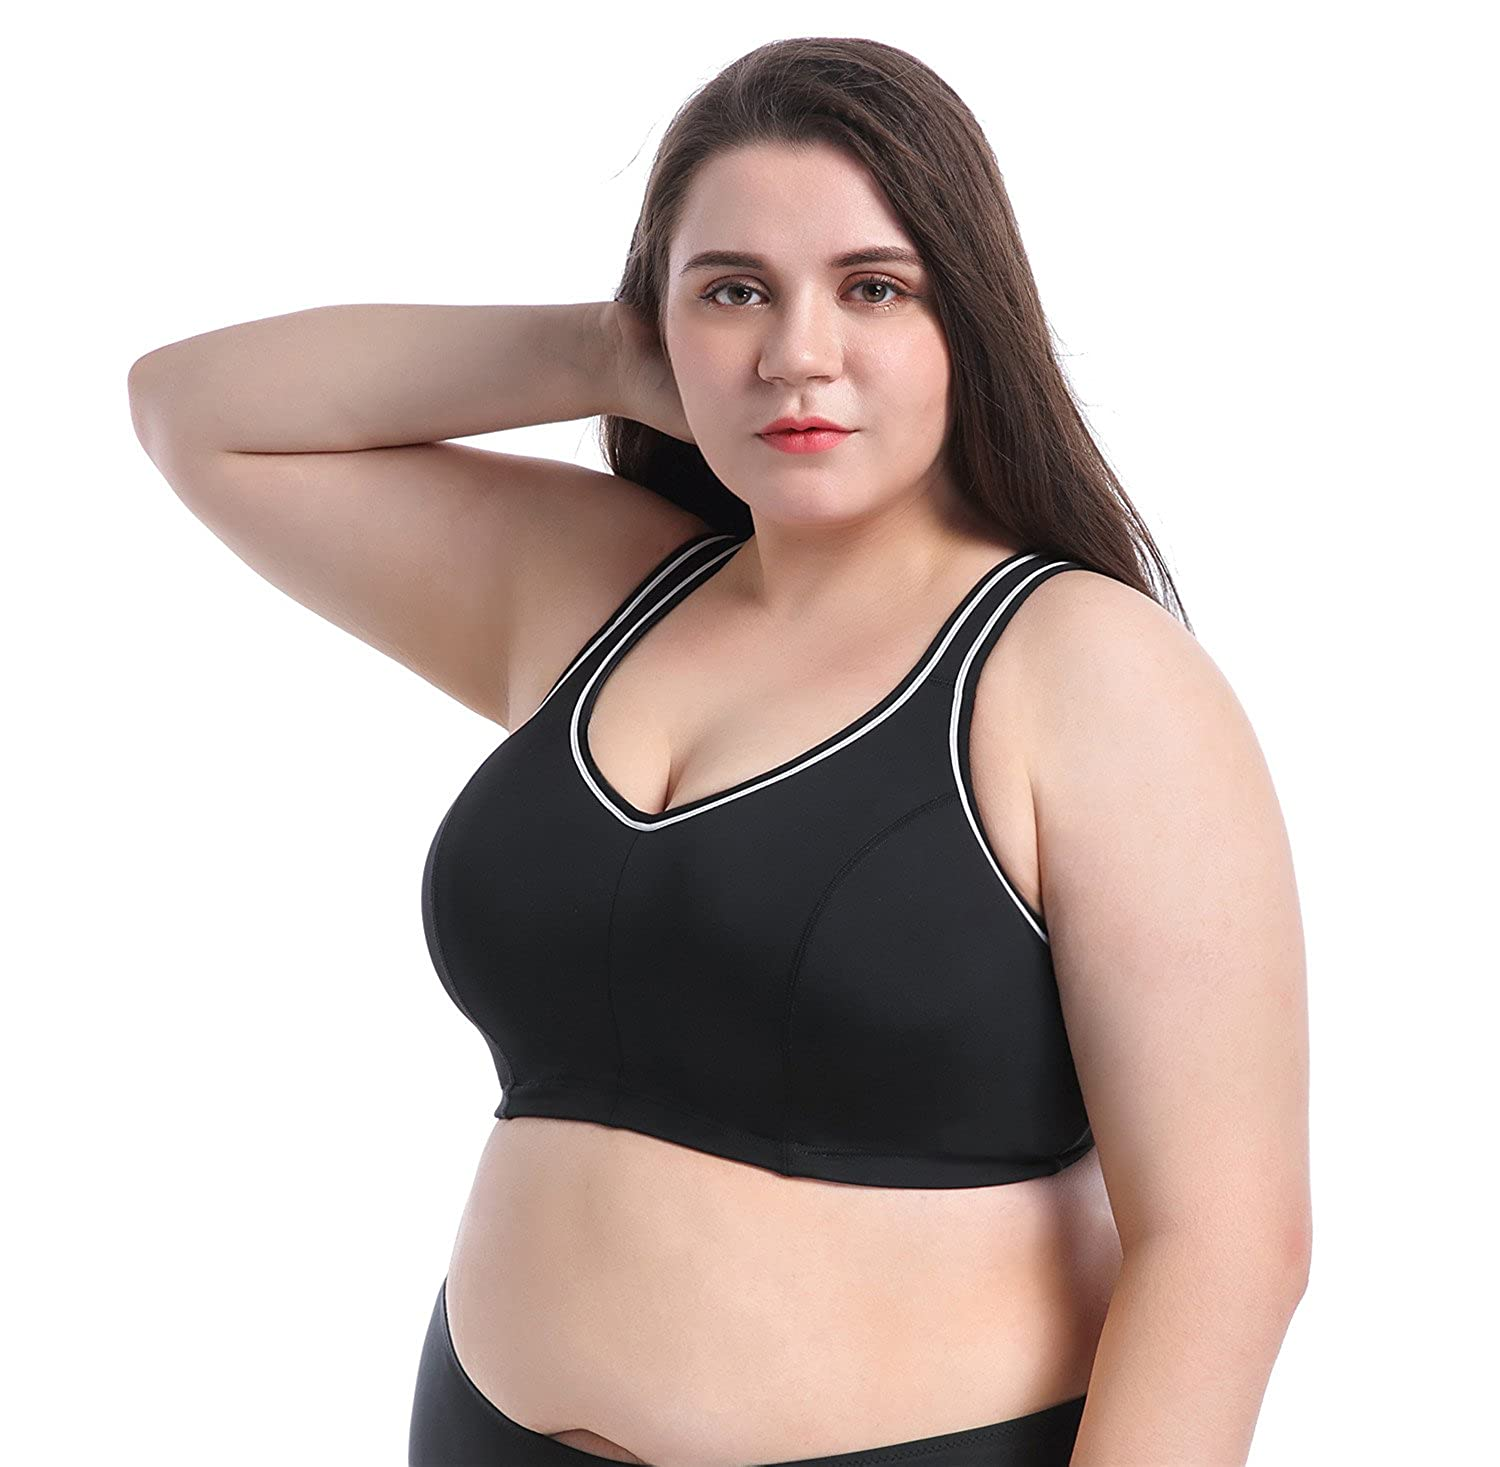 fea27f657c9cb Ciko Sports Bra Plus Size Large Busts No Padding Full Support High Impact  Wired for Woman Girls at Amazon Women s Clothing store